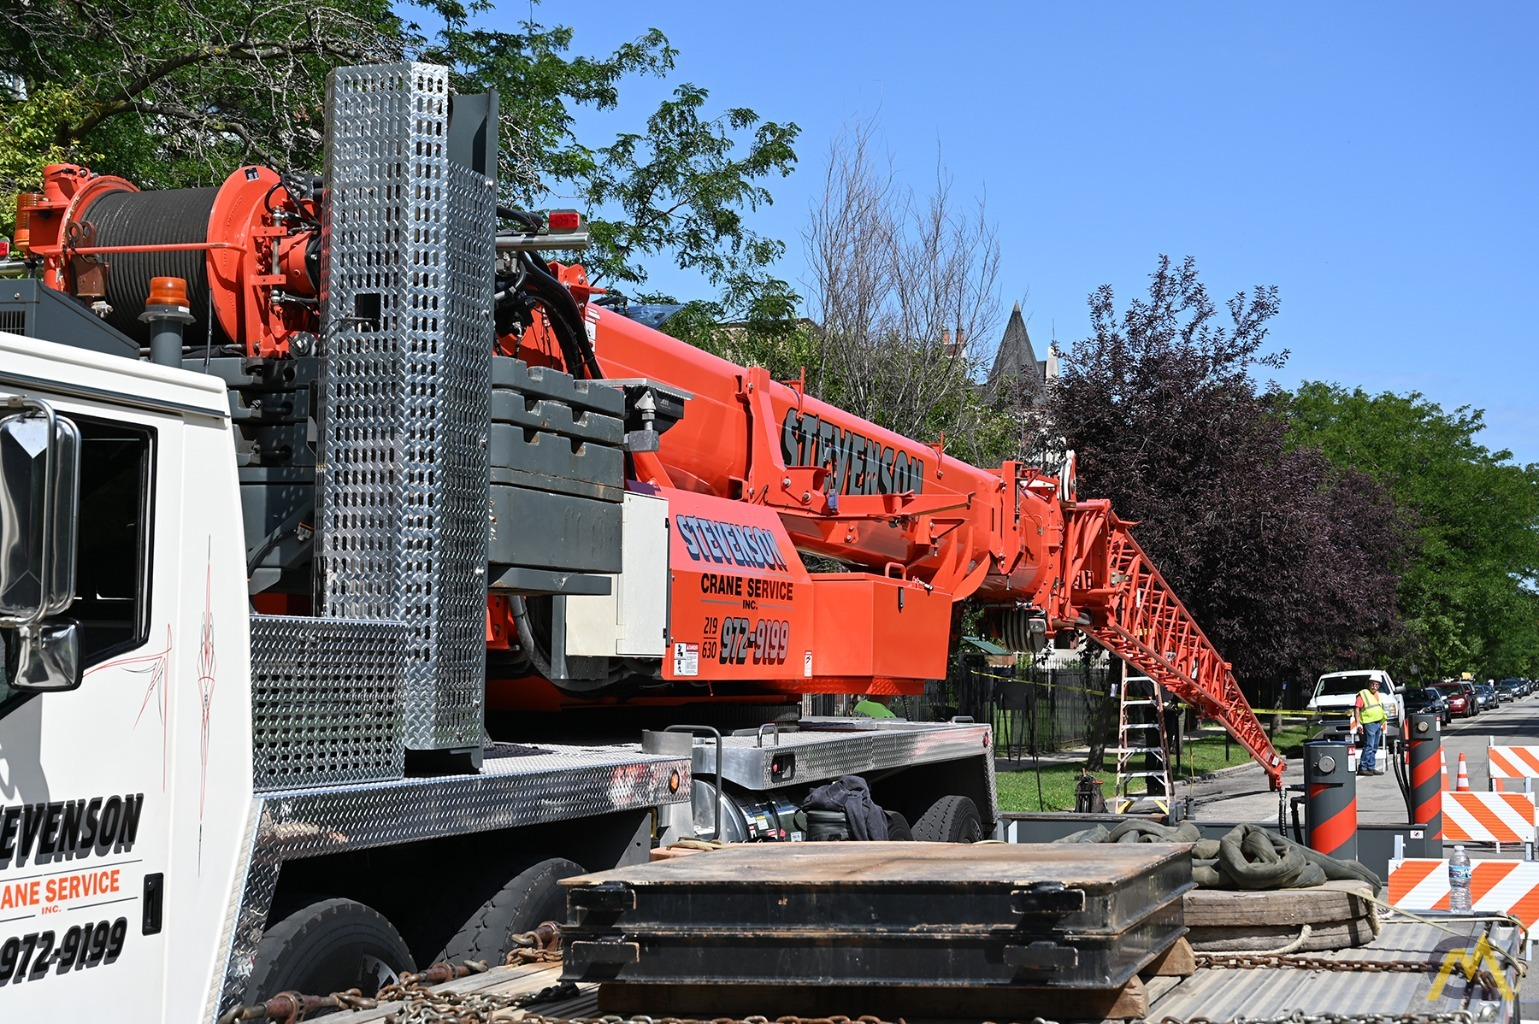 2013 Grove TMS9000E 110-Ton Hydraulic Truck Crane Motivated Seller, All Reasonable Offers Considered 7